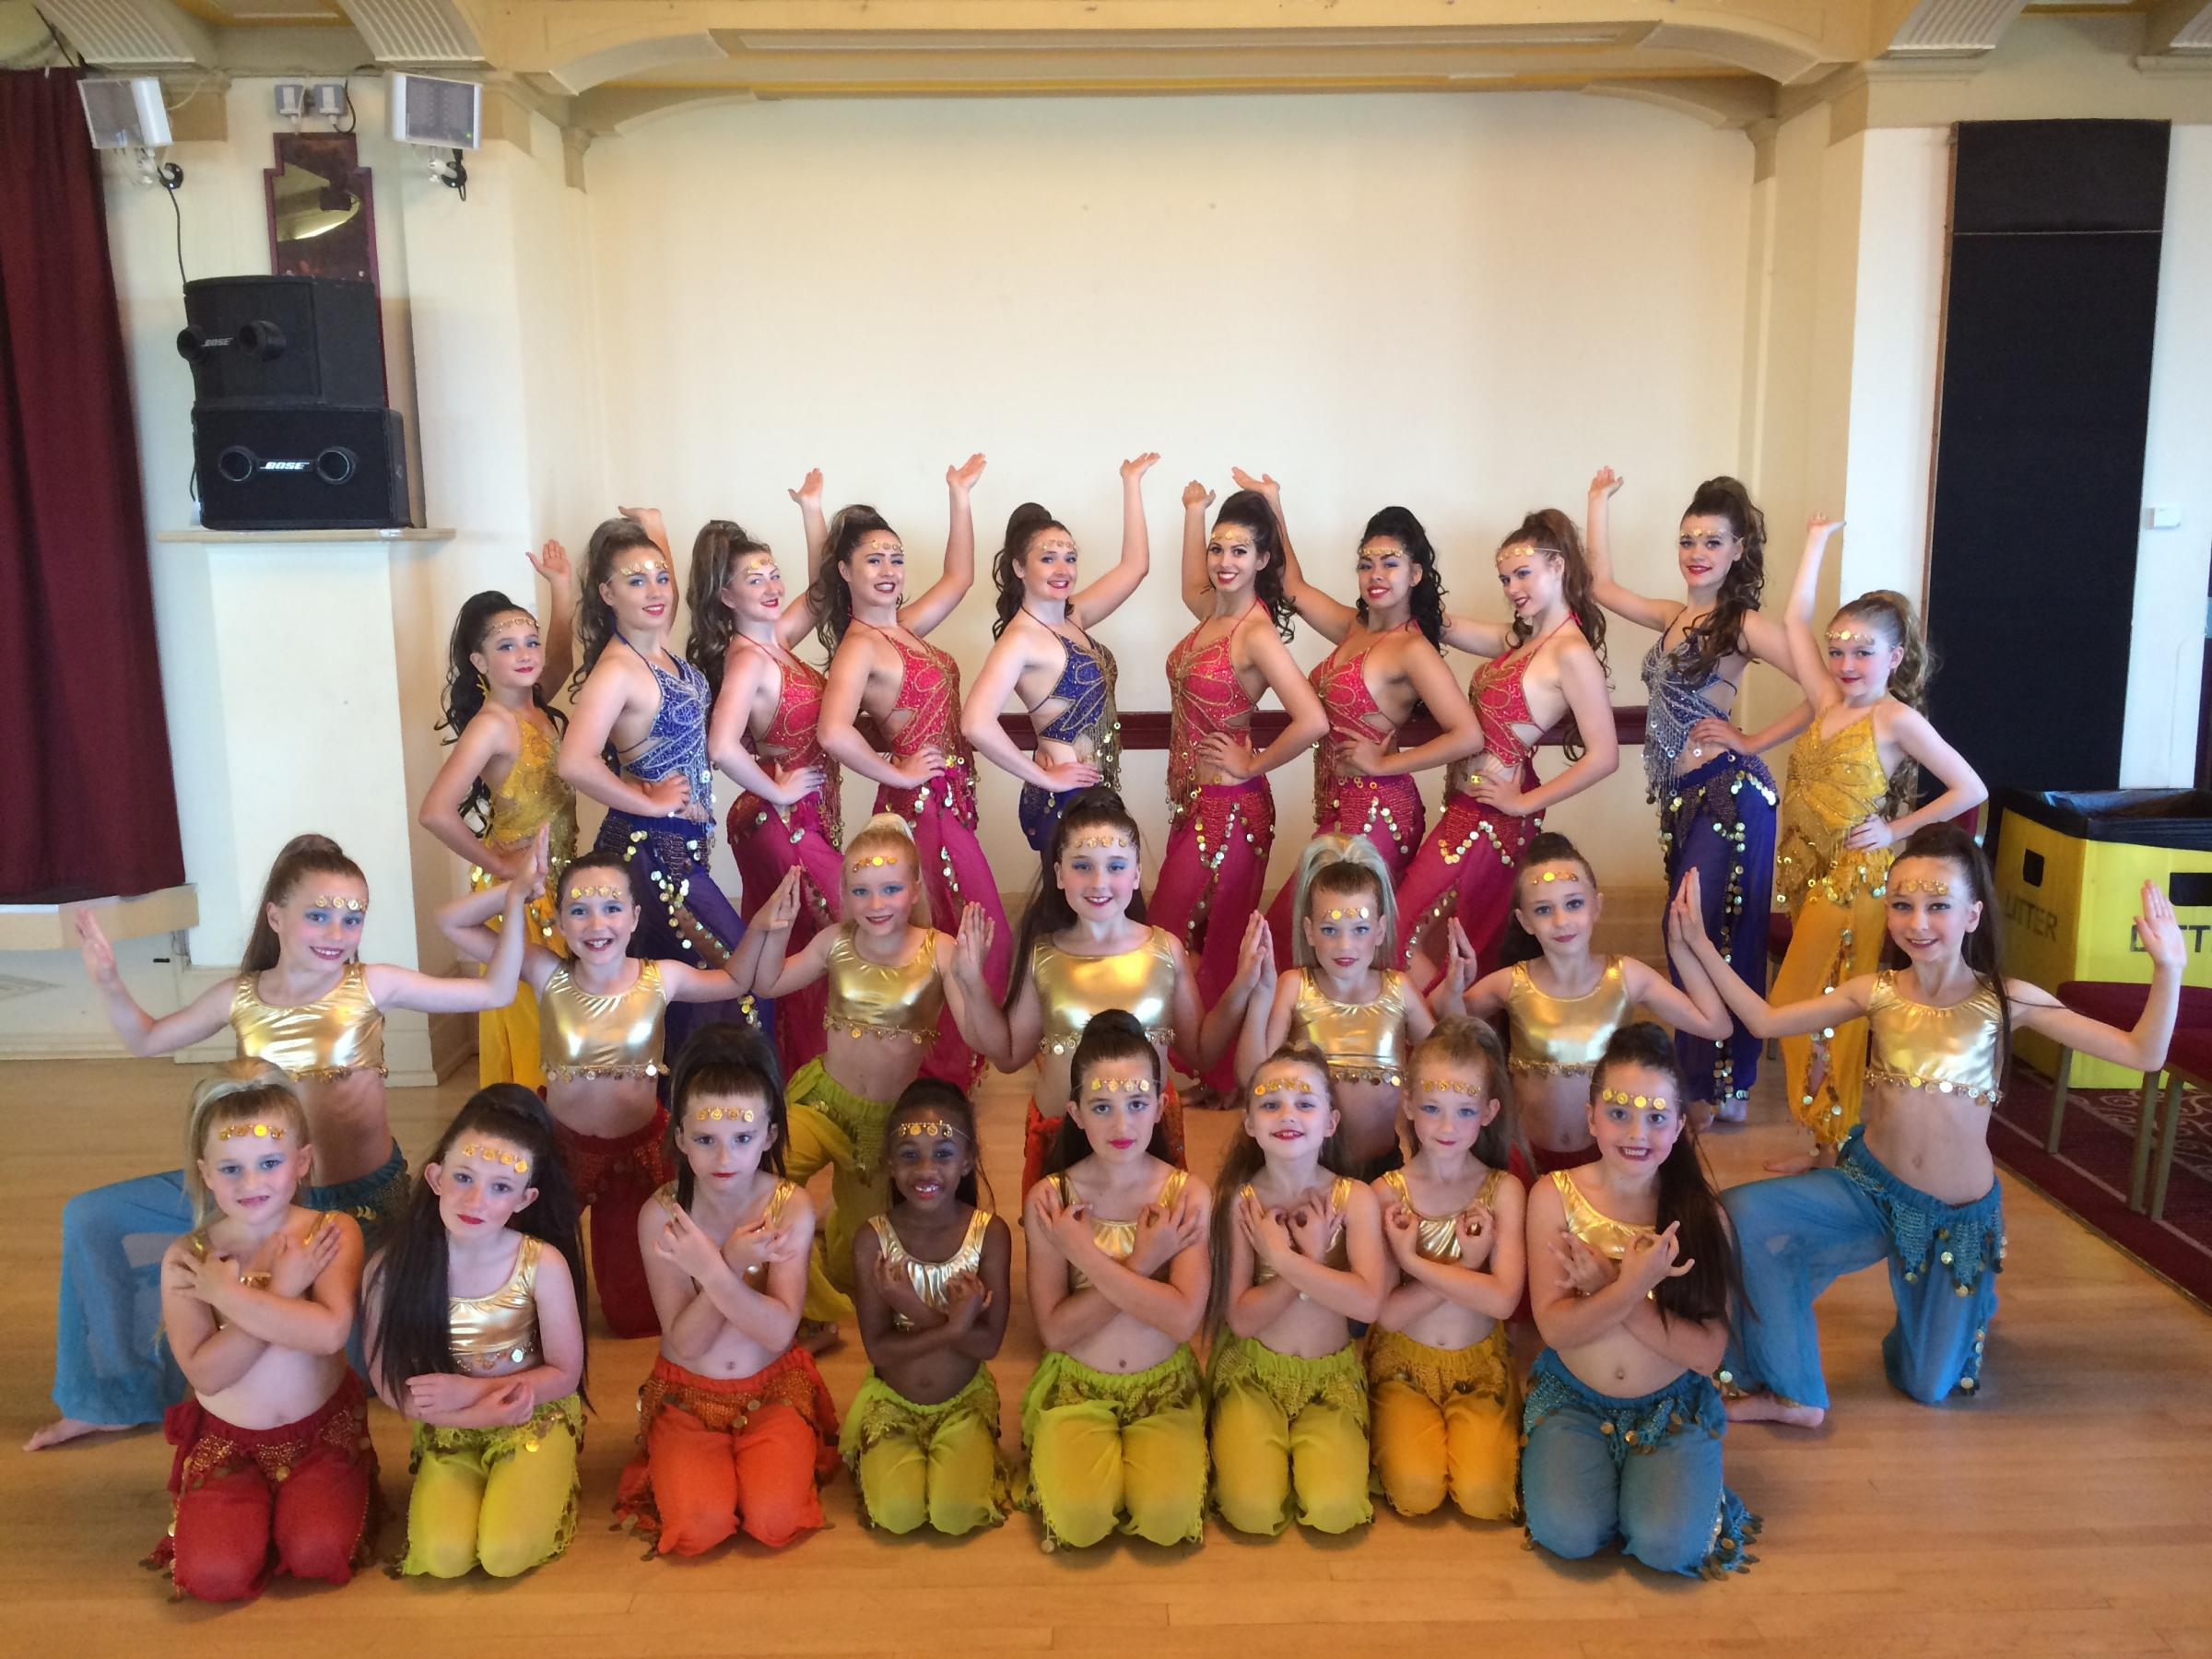 Pupils at Didcot's Bernadine Soul School of Dance have won a place to perform at Disneyland Paris later this year